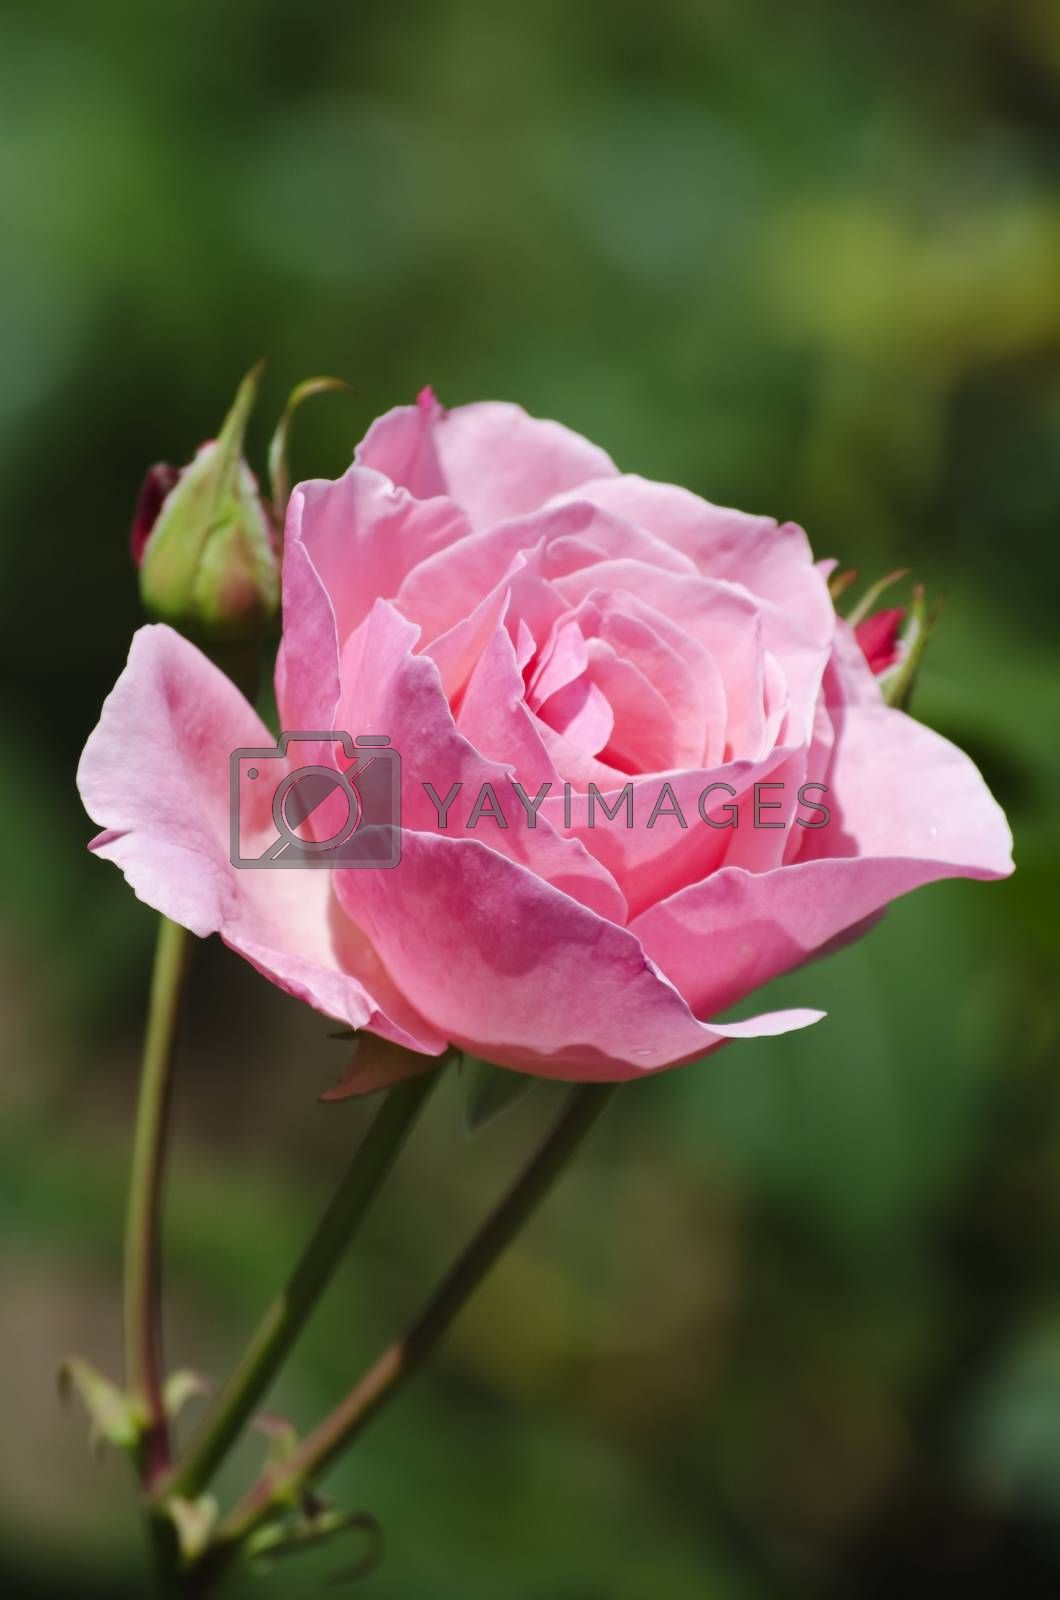 Photo of the Single Rose Over Natural Green Background